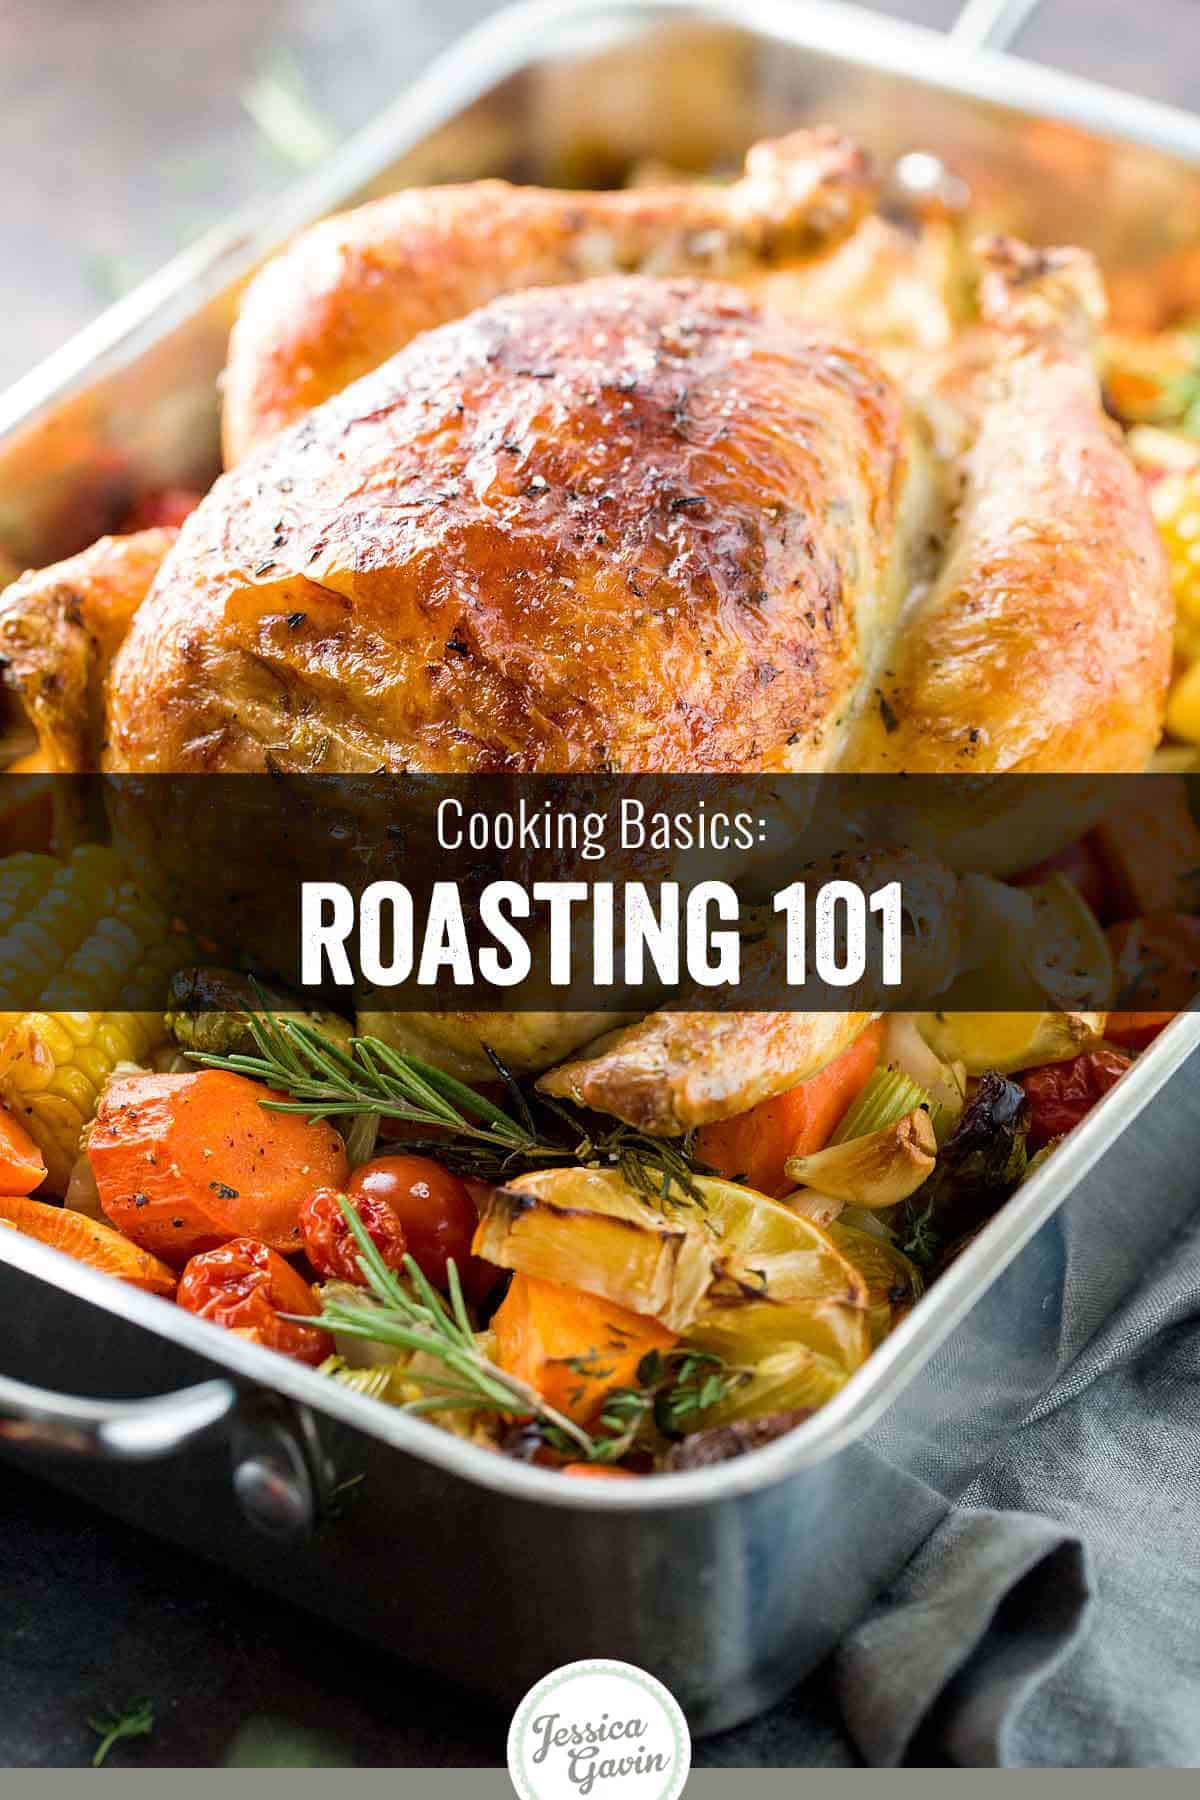 Roasting is the time-tested way to get mouth-watering results with very little effort and it all starts with the oven right in your kitchen. #cooking101 #foodscience #roasting #howtocook